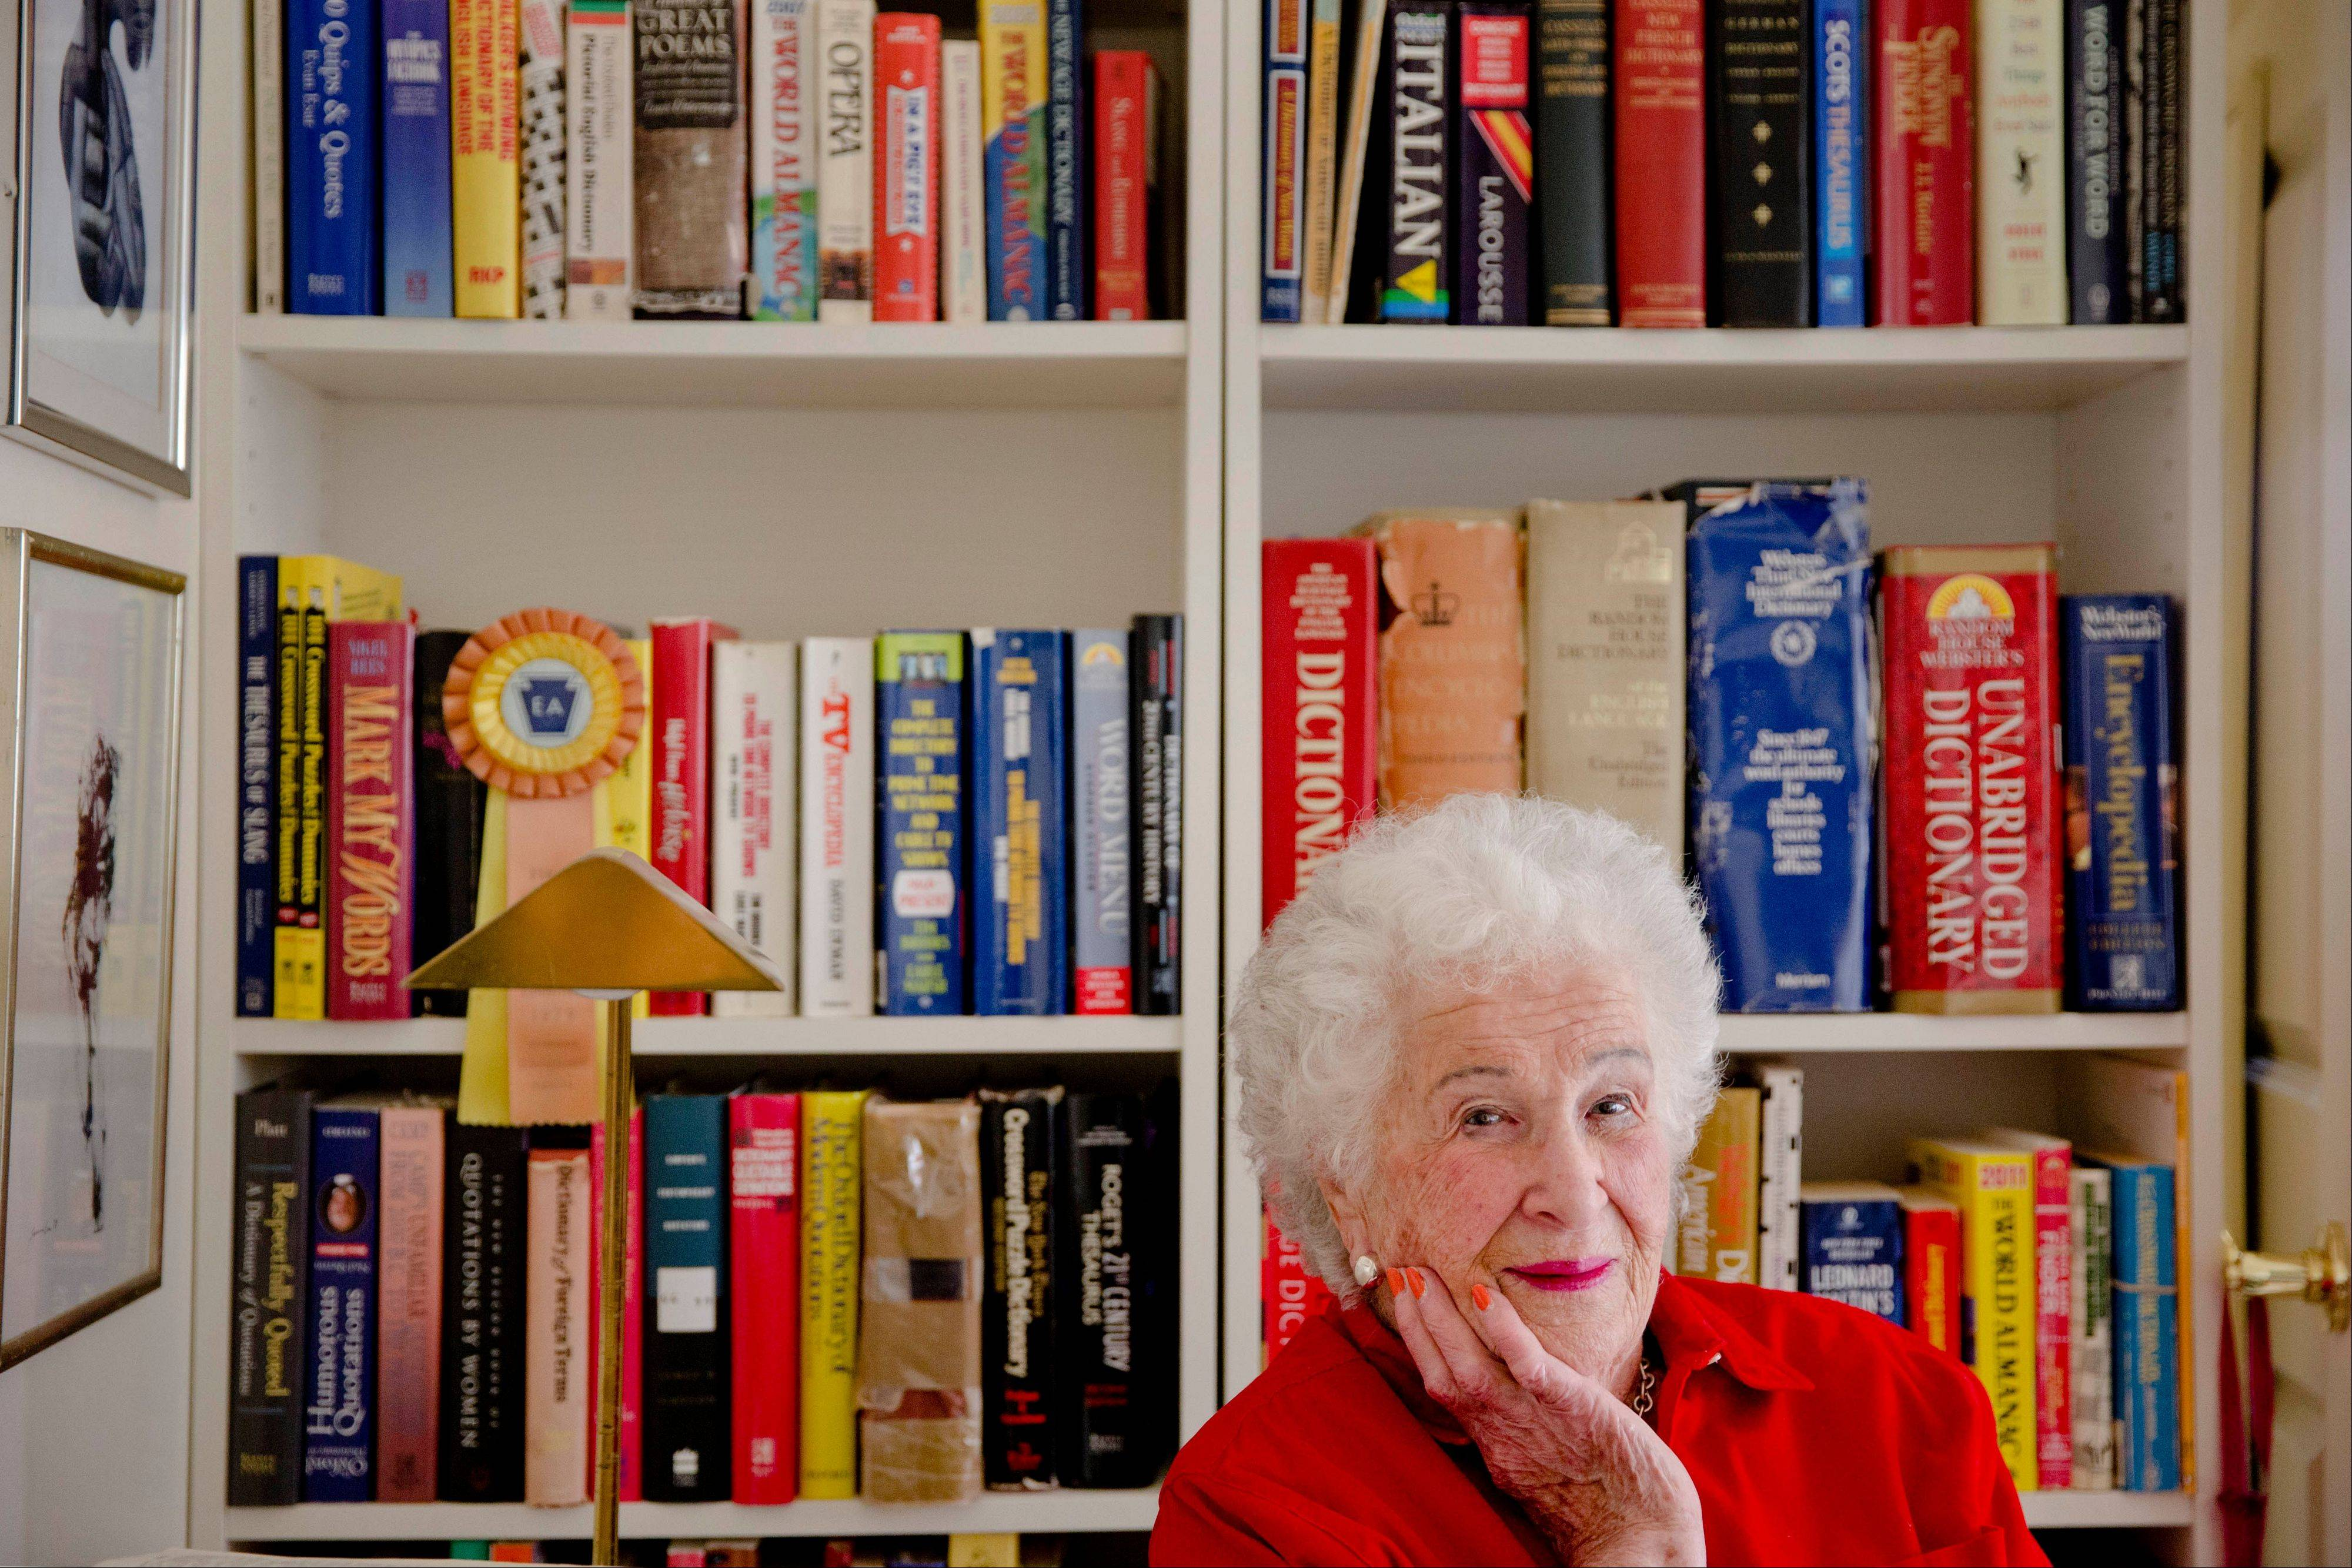 Longtime crossword constructor Bernice Gordon was born on Jan. 11, 1914. The New York Times is scheduled to publish one of her puzzles, making her the first centenarian ever to have a grid printed in the paper. Gordon's feat comes not long after the centennial of the puzzle itself.